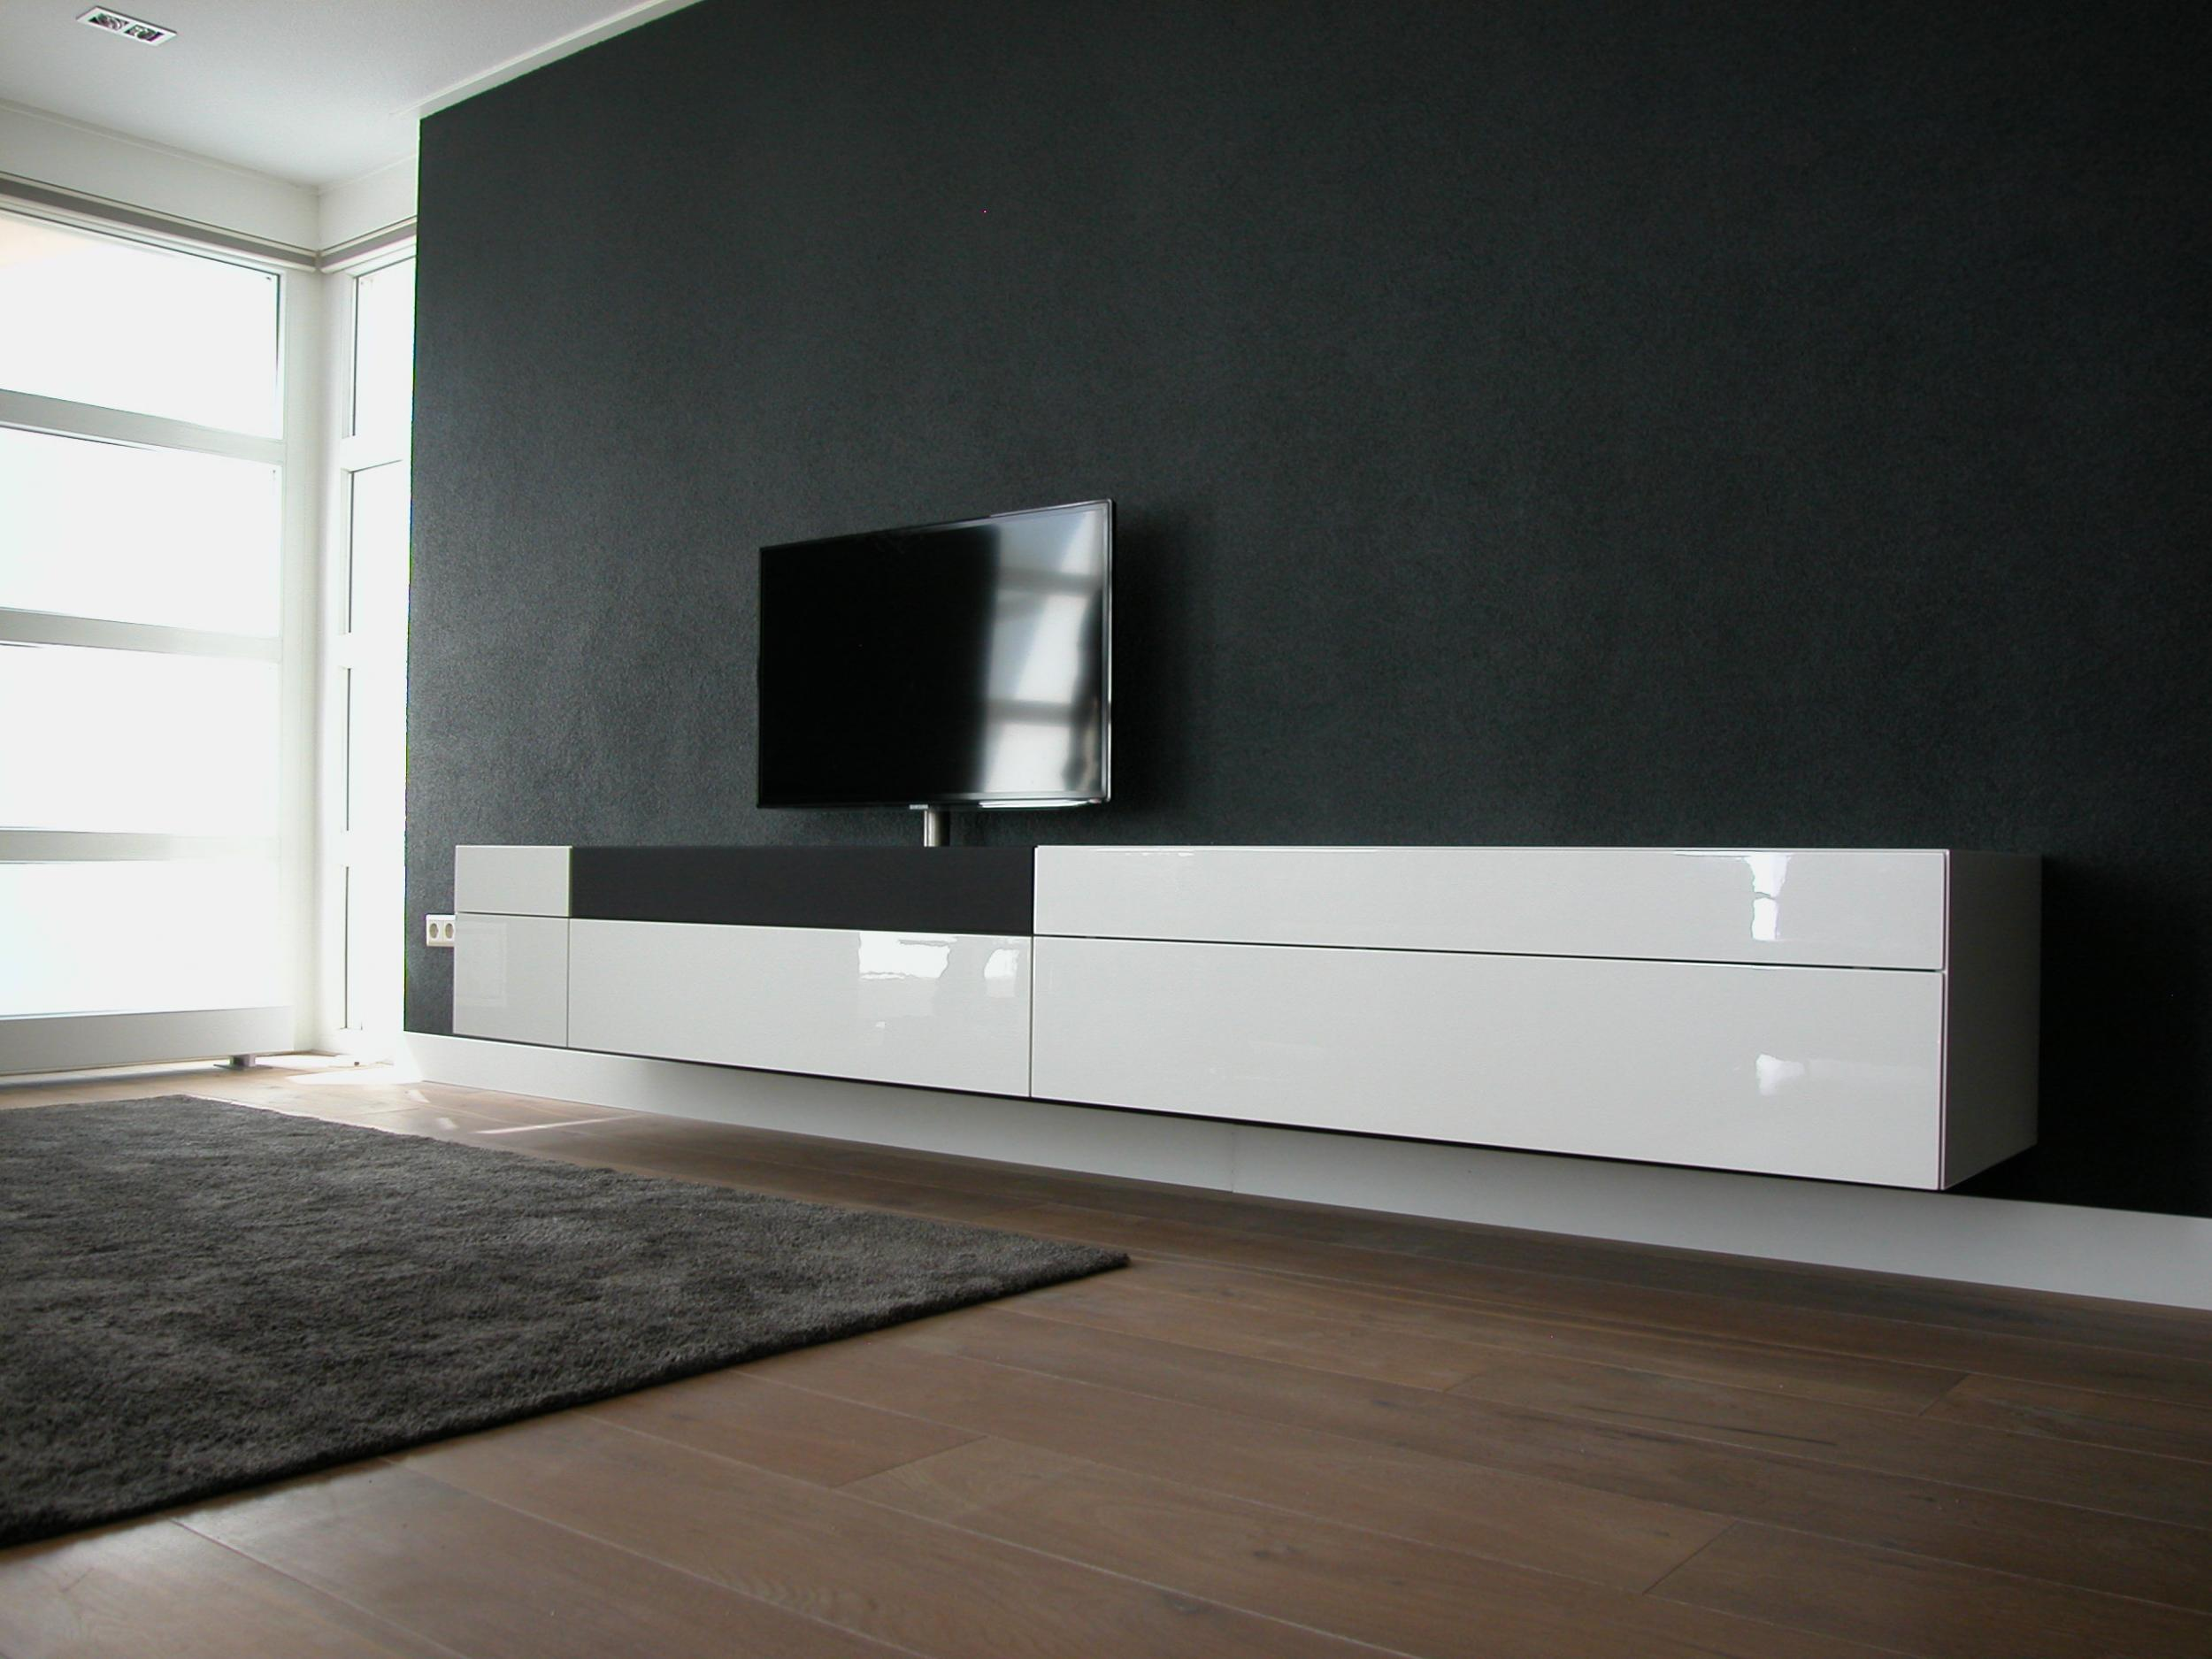 Artyx The New Design Vision Avs 300 Concept Tv Meubel In